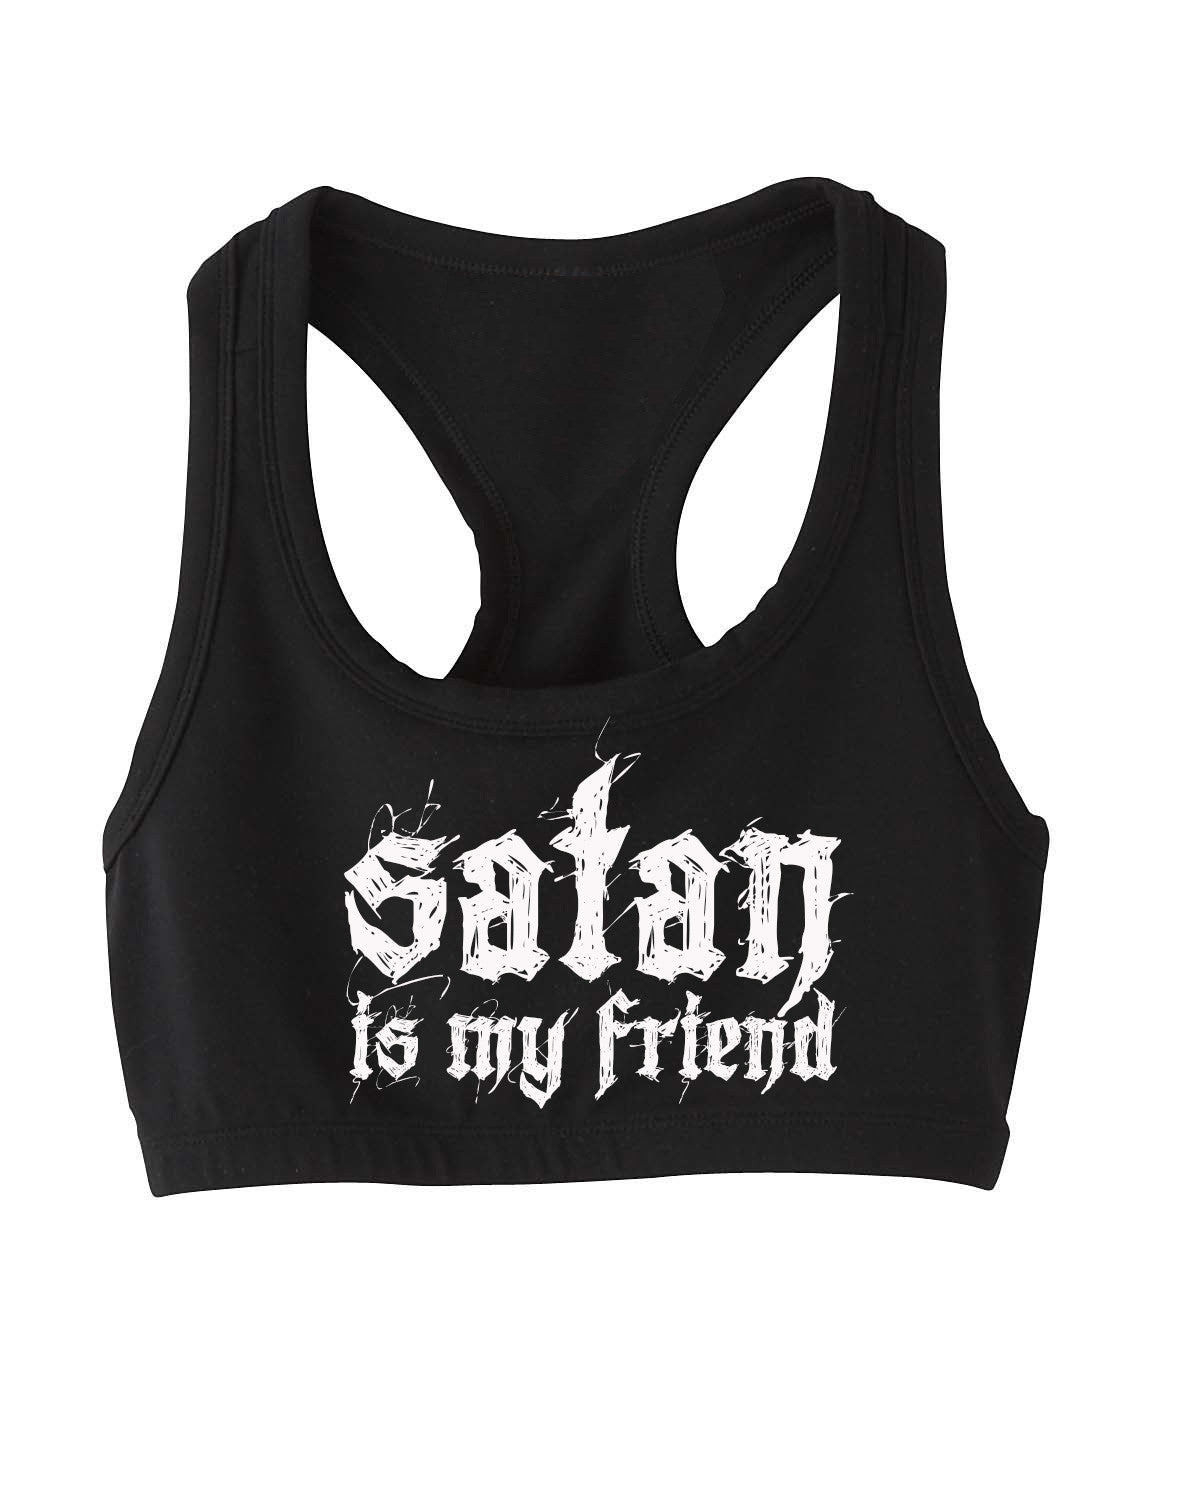 Satan is my friend bra